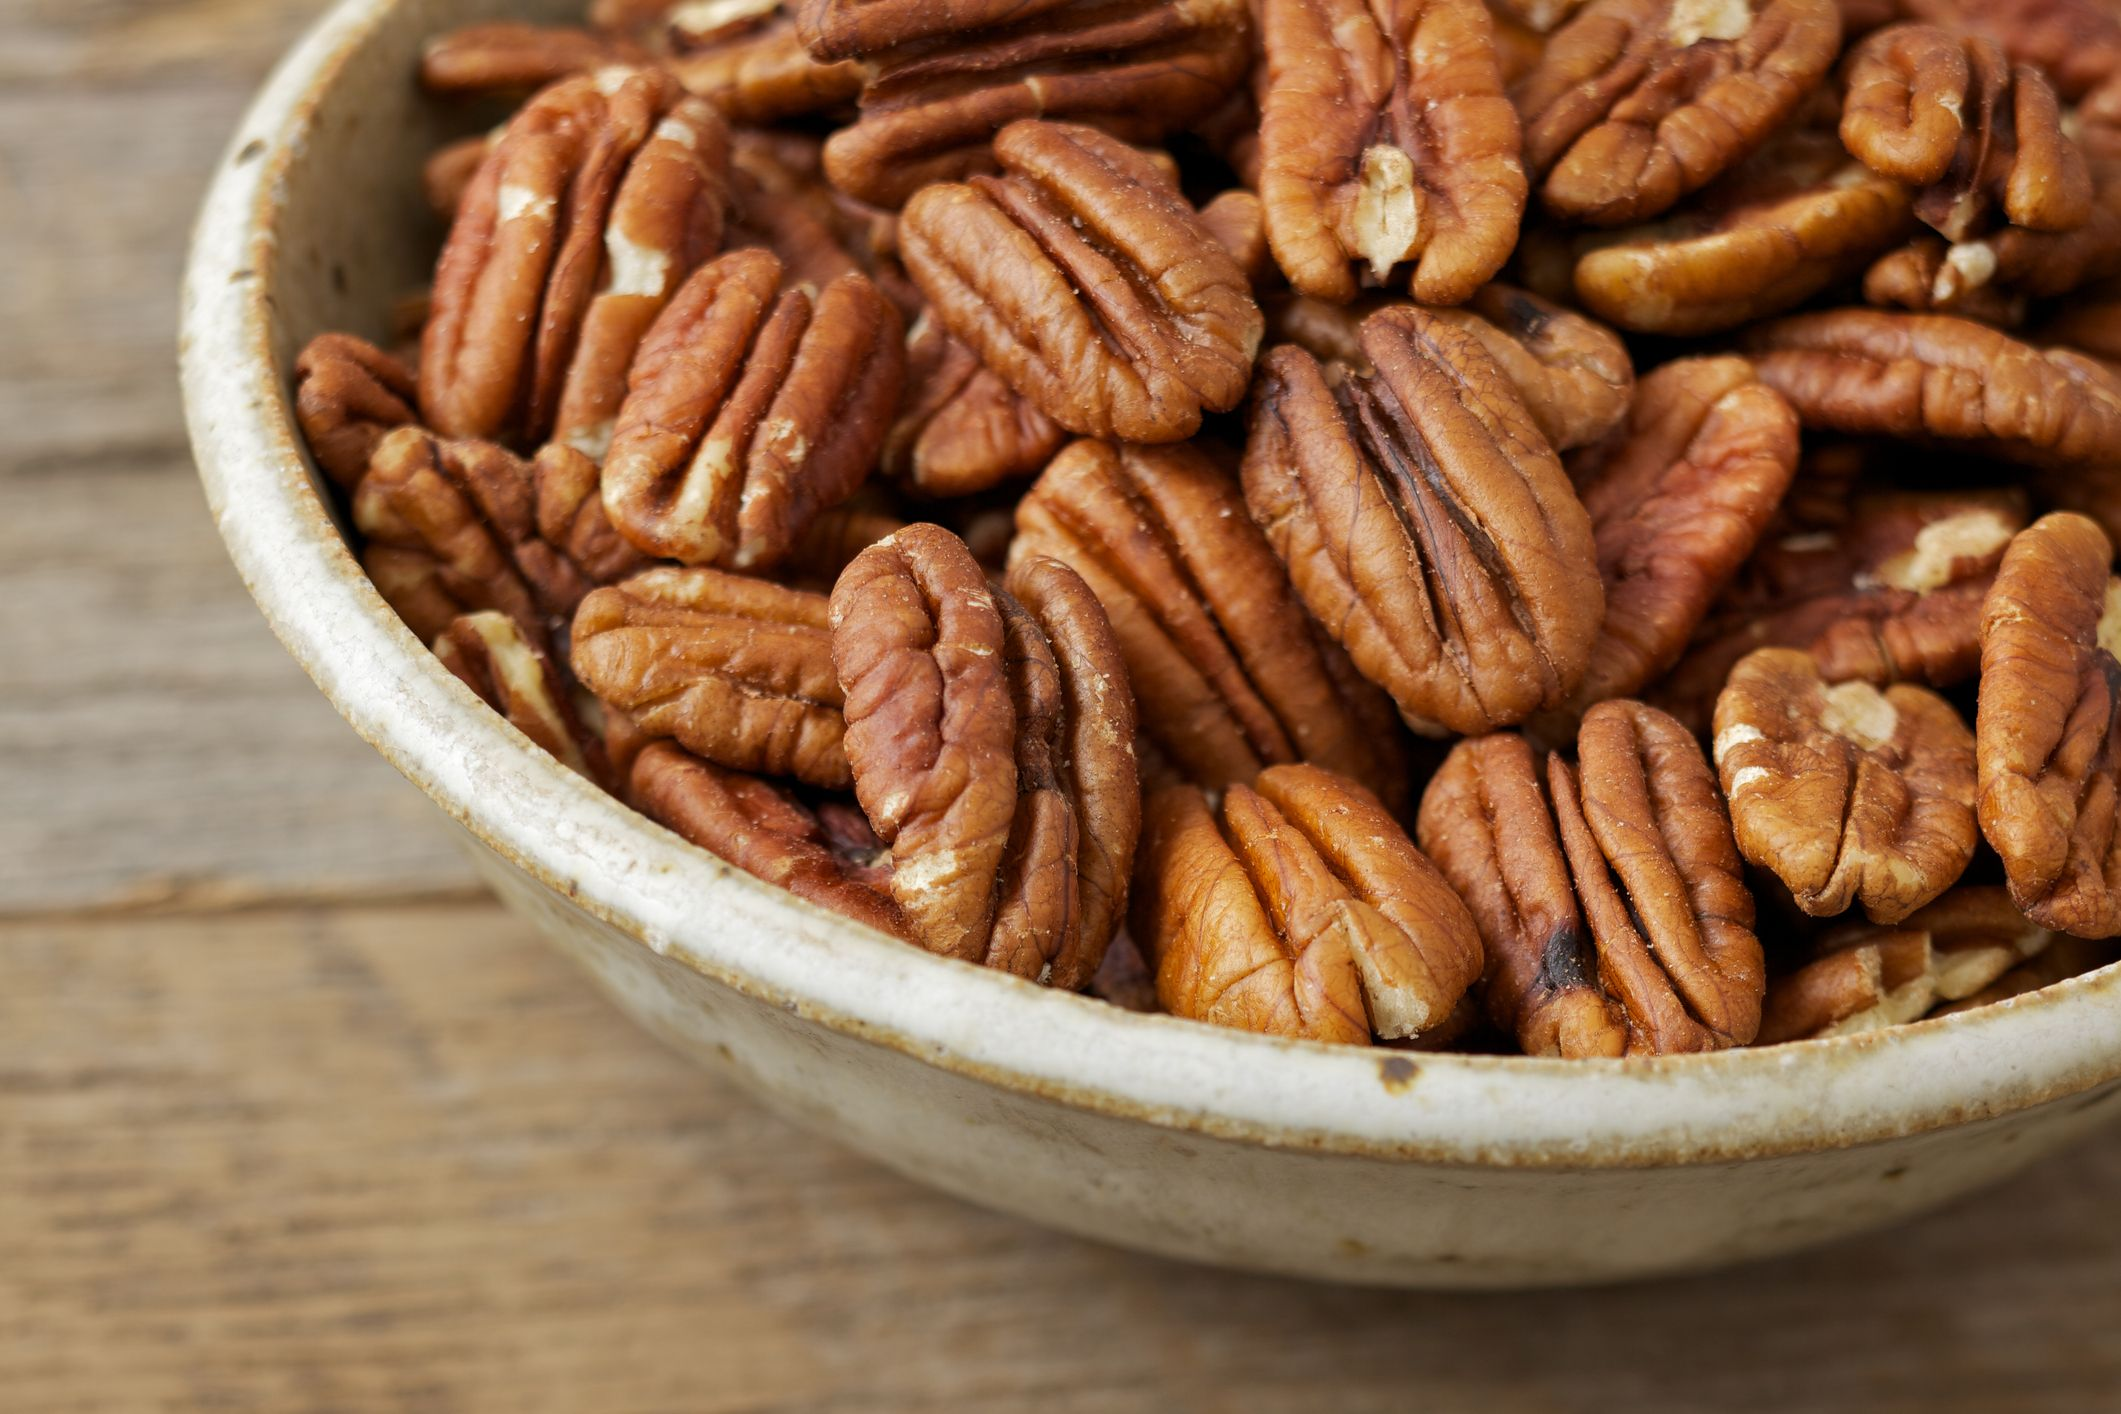 9 Health Benefits of Pecans - Are Pecans Good for You?